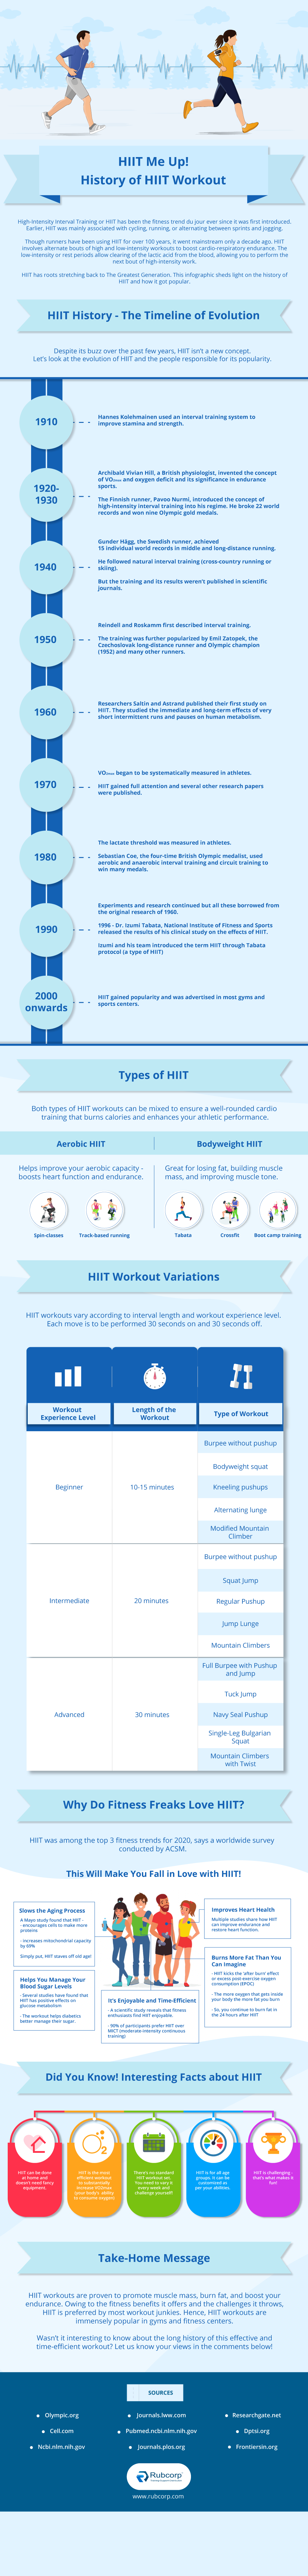 history of hiit